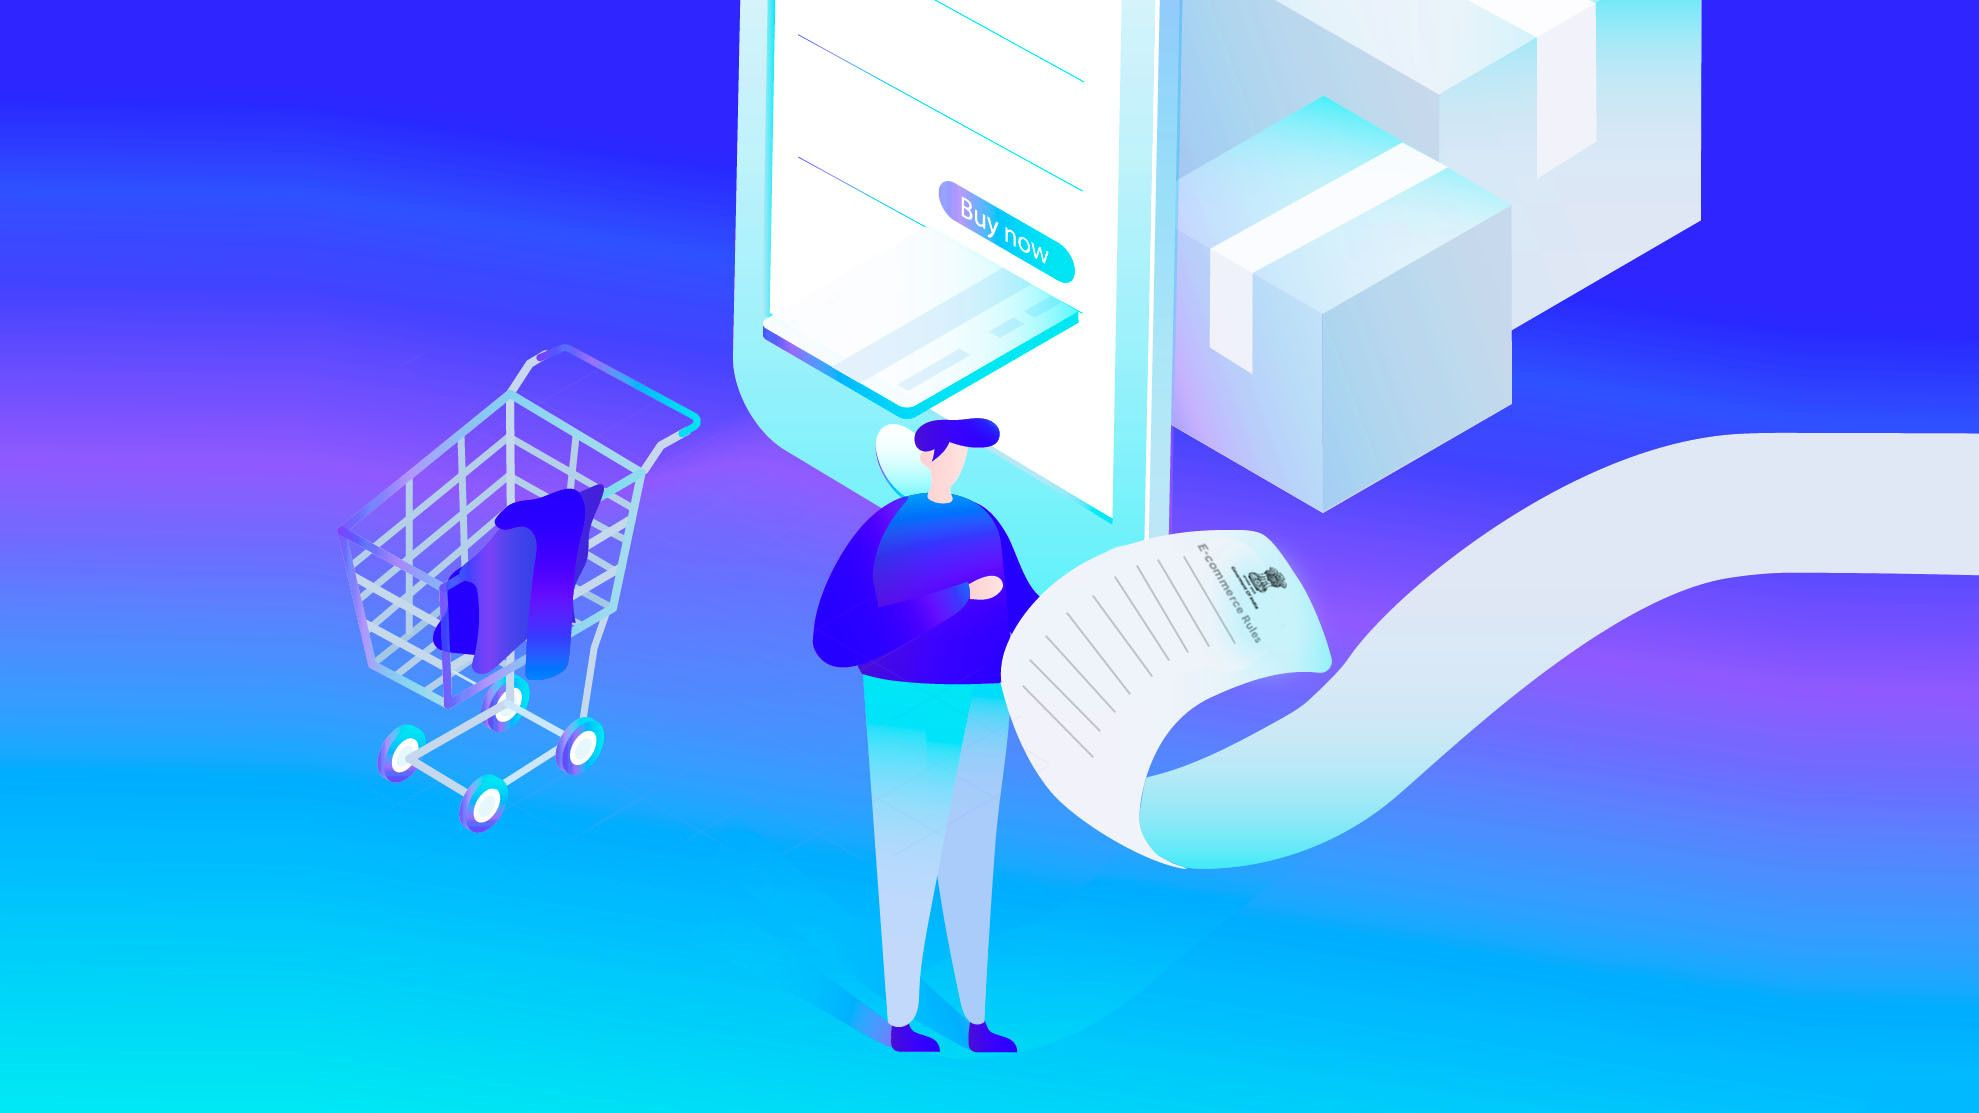 Is this the end of the road for the e-commerce juggernaut?